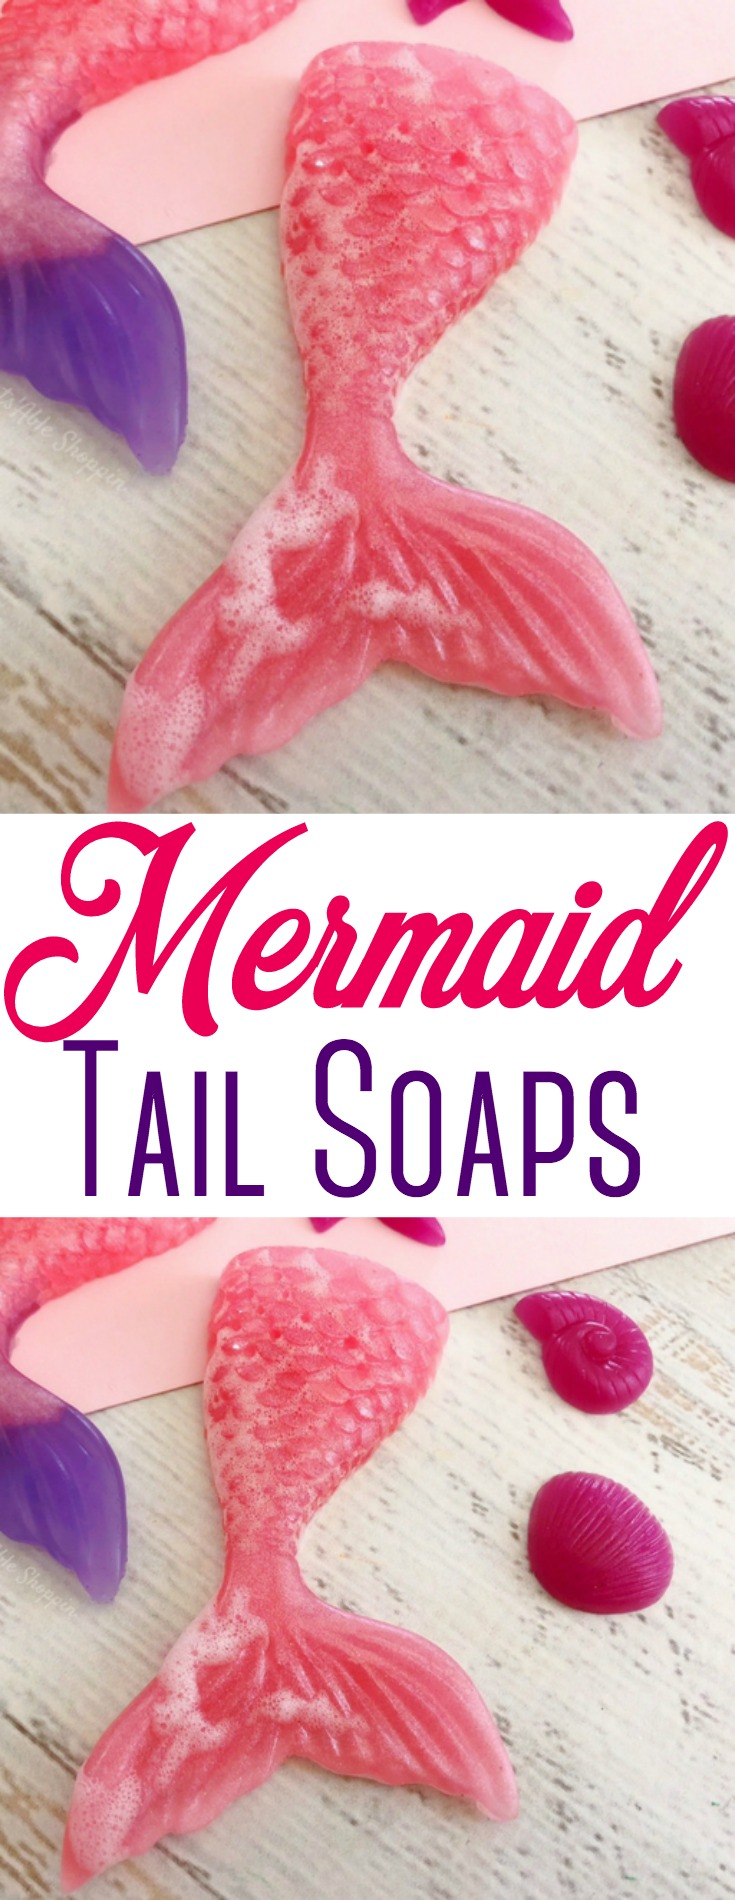 These easy Mermaid Tail Soaps are perfect for small soap favors for kids birthday parties & more!  #mermaid #soapfavors #mermaidtail #kids #birthday #kidsbirthday